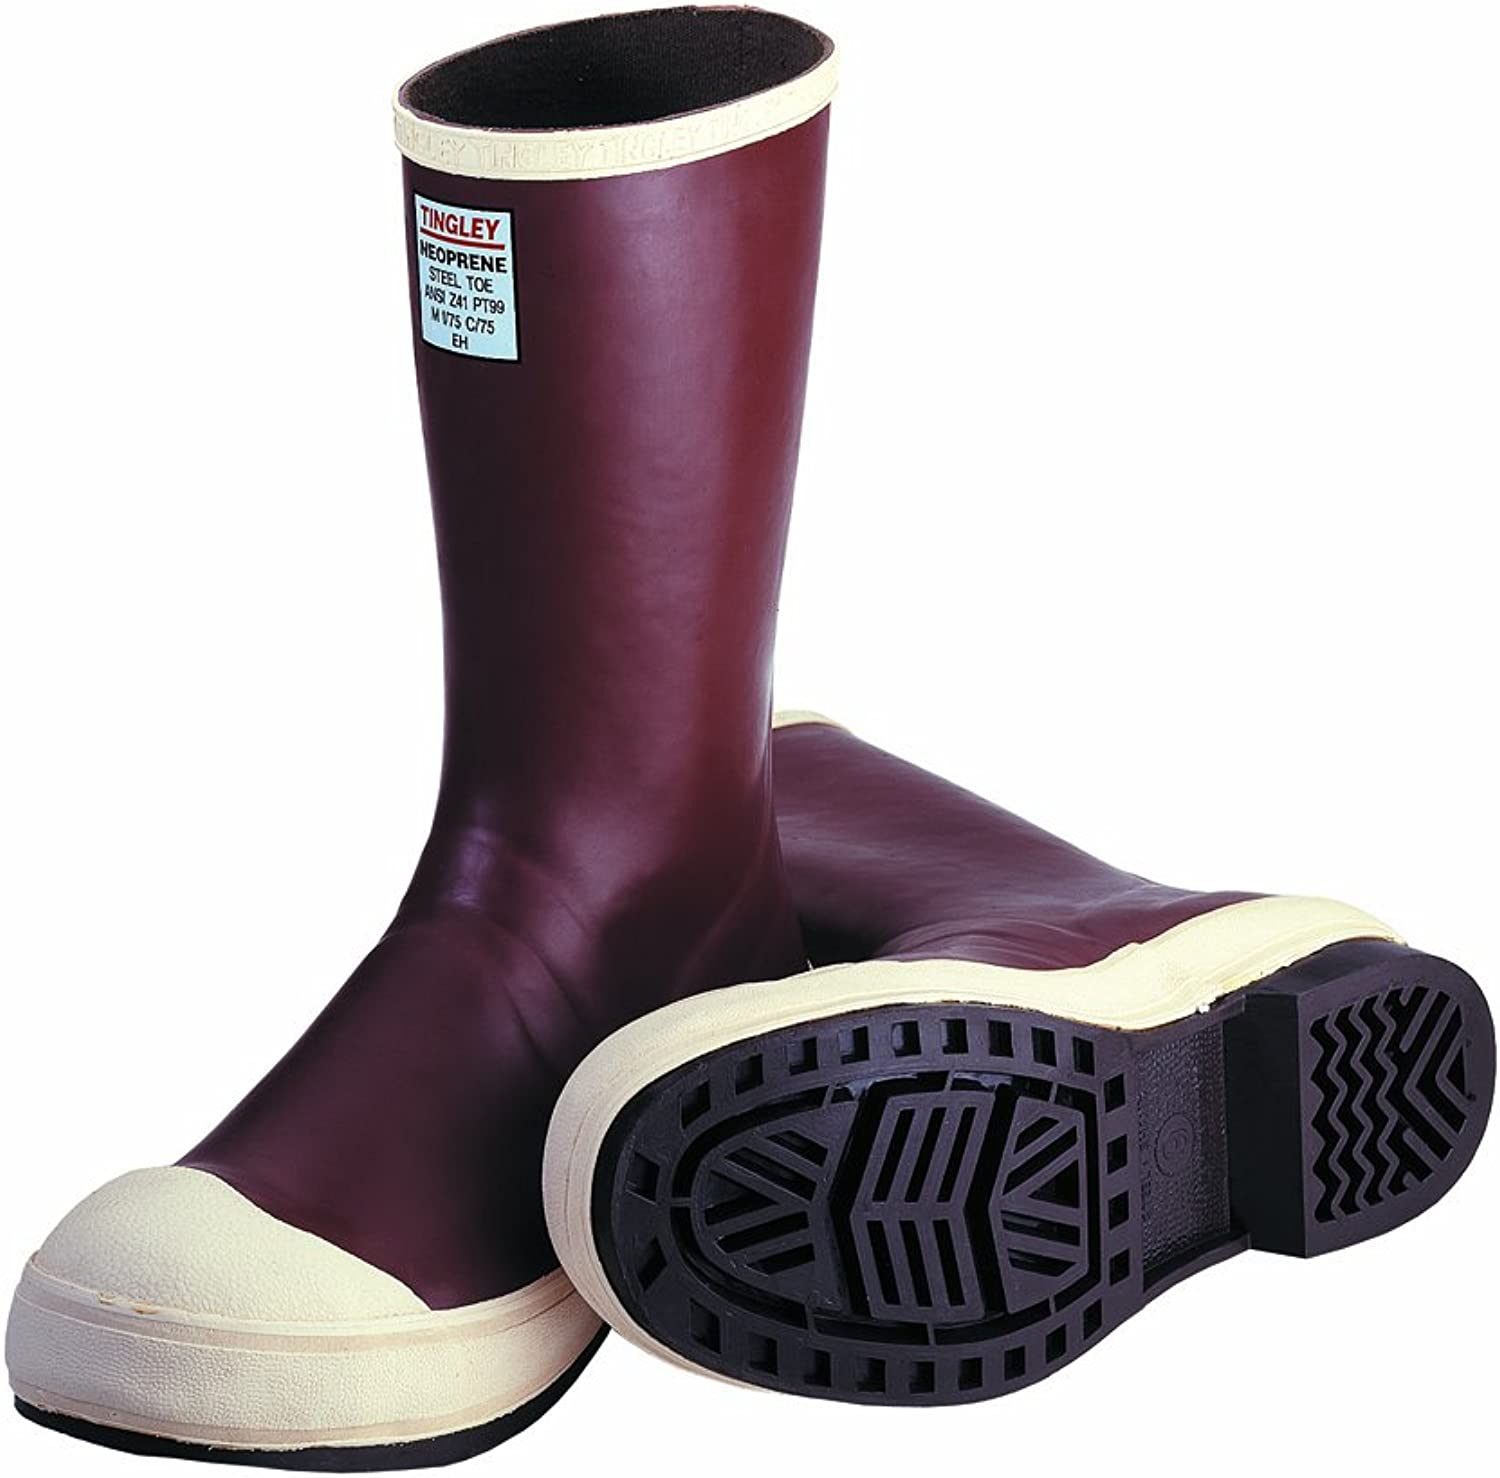 TINGLEY MB922B.12 12-1 2  Chevron Outsole Neoprene Boot with Fabric Liner Plain Toe, Size 12, Brick Red Brown